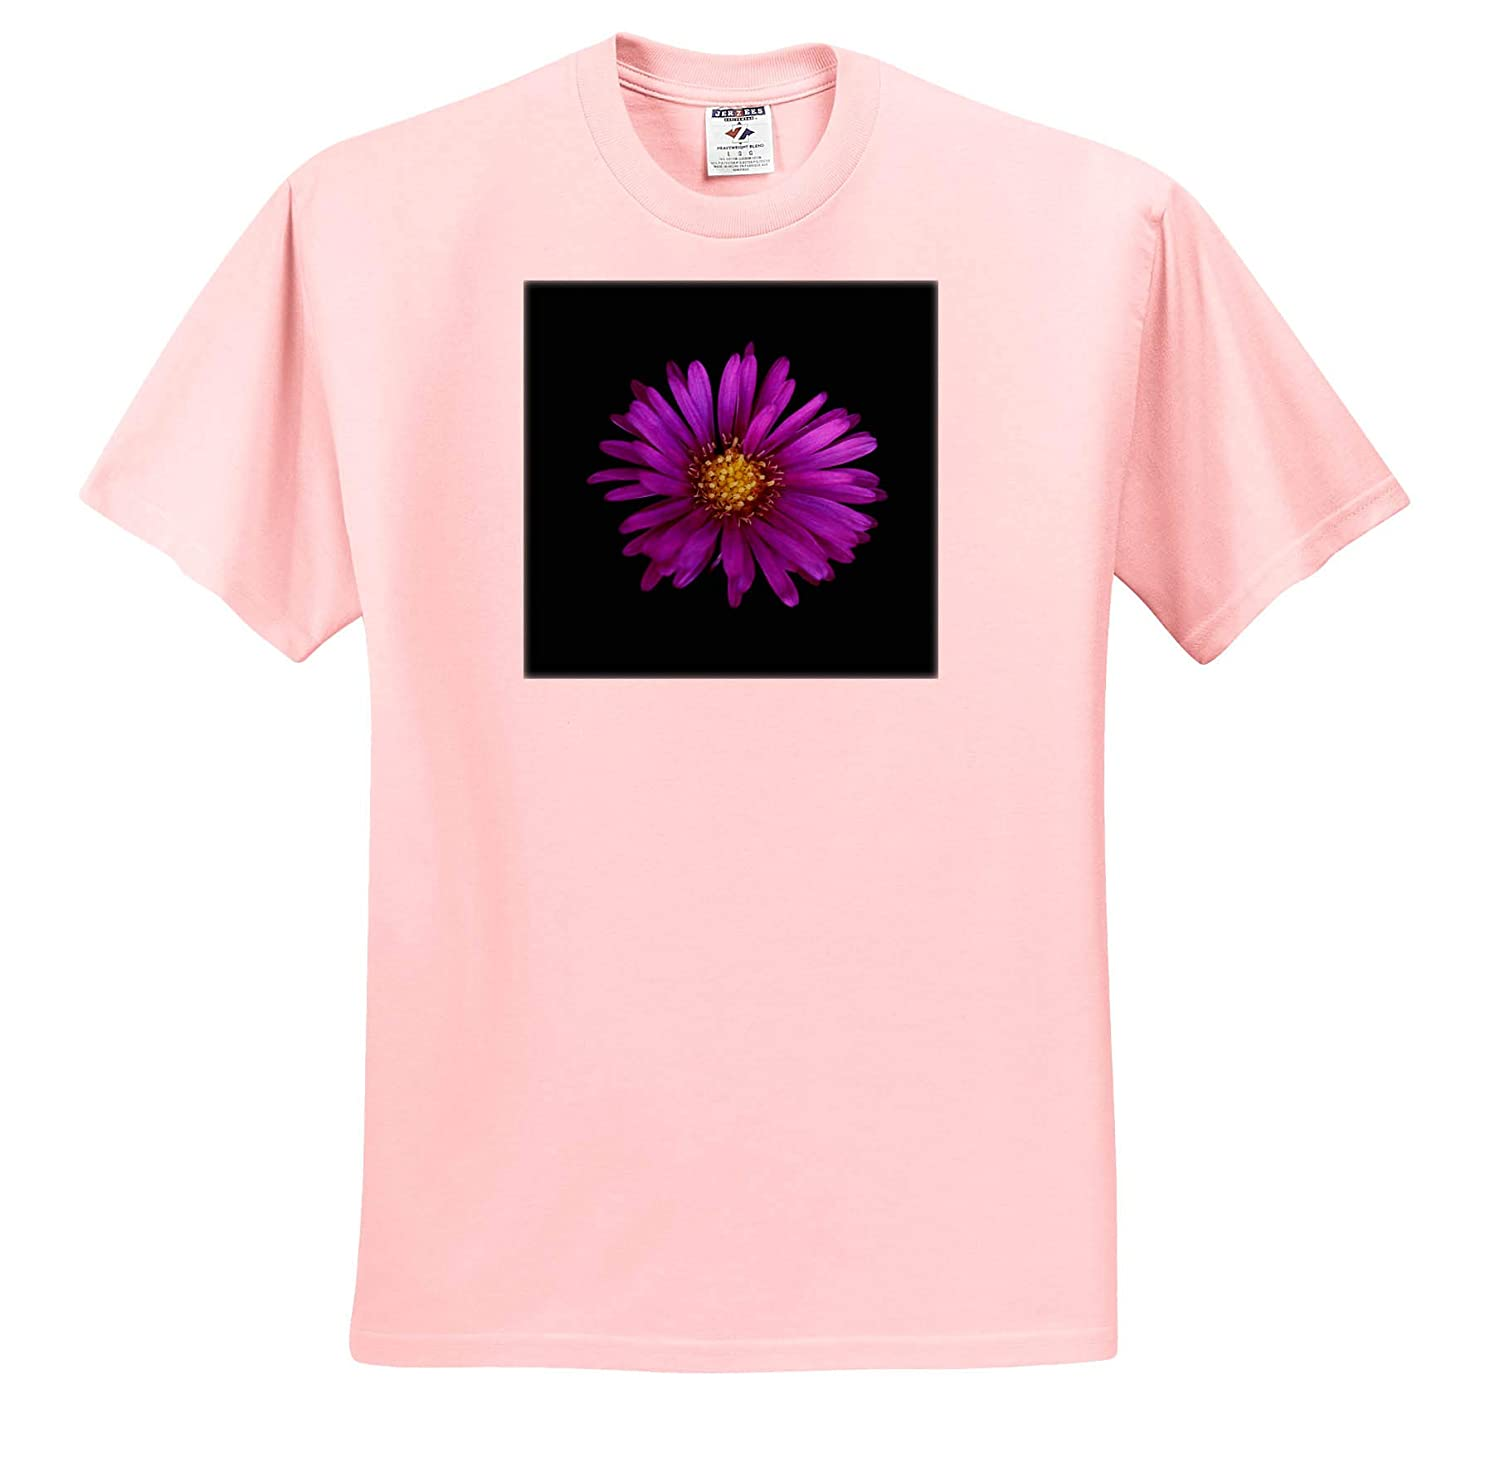 ts/_320118 Macro Photograph of a Purple Aster on Black Background Flowers - Adult T-Shirt XL 3dRose Stamp City